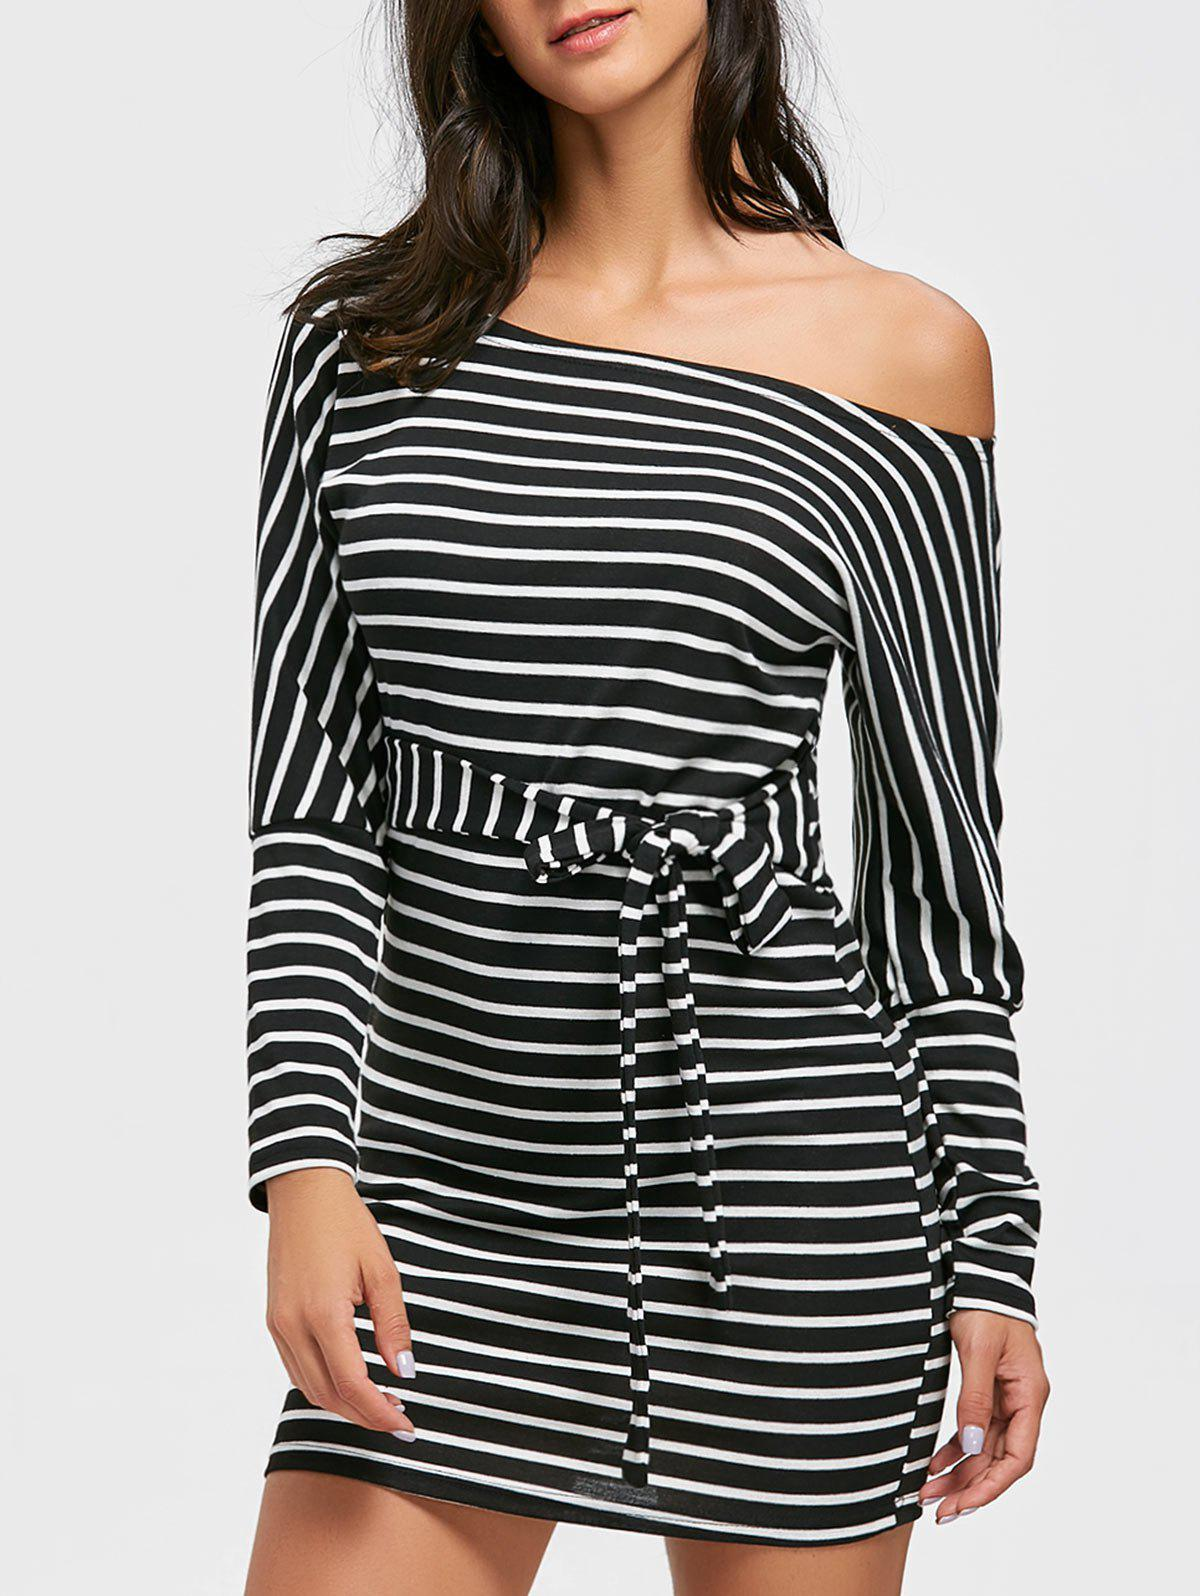 Skew Neck Striped Mini Bodycon Dress - BLACK XL